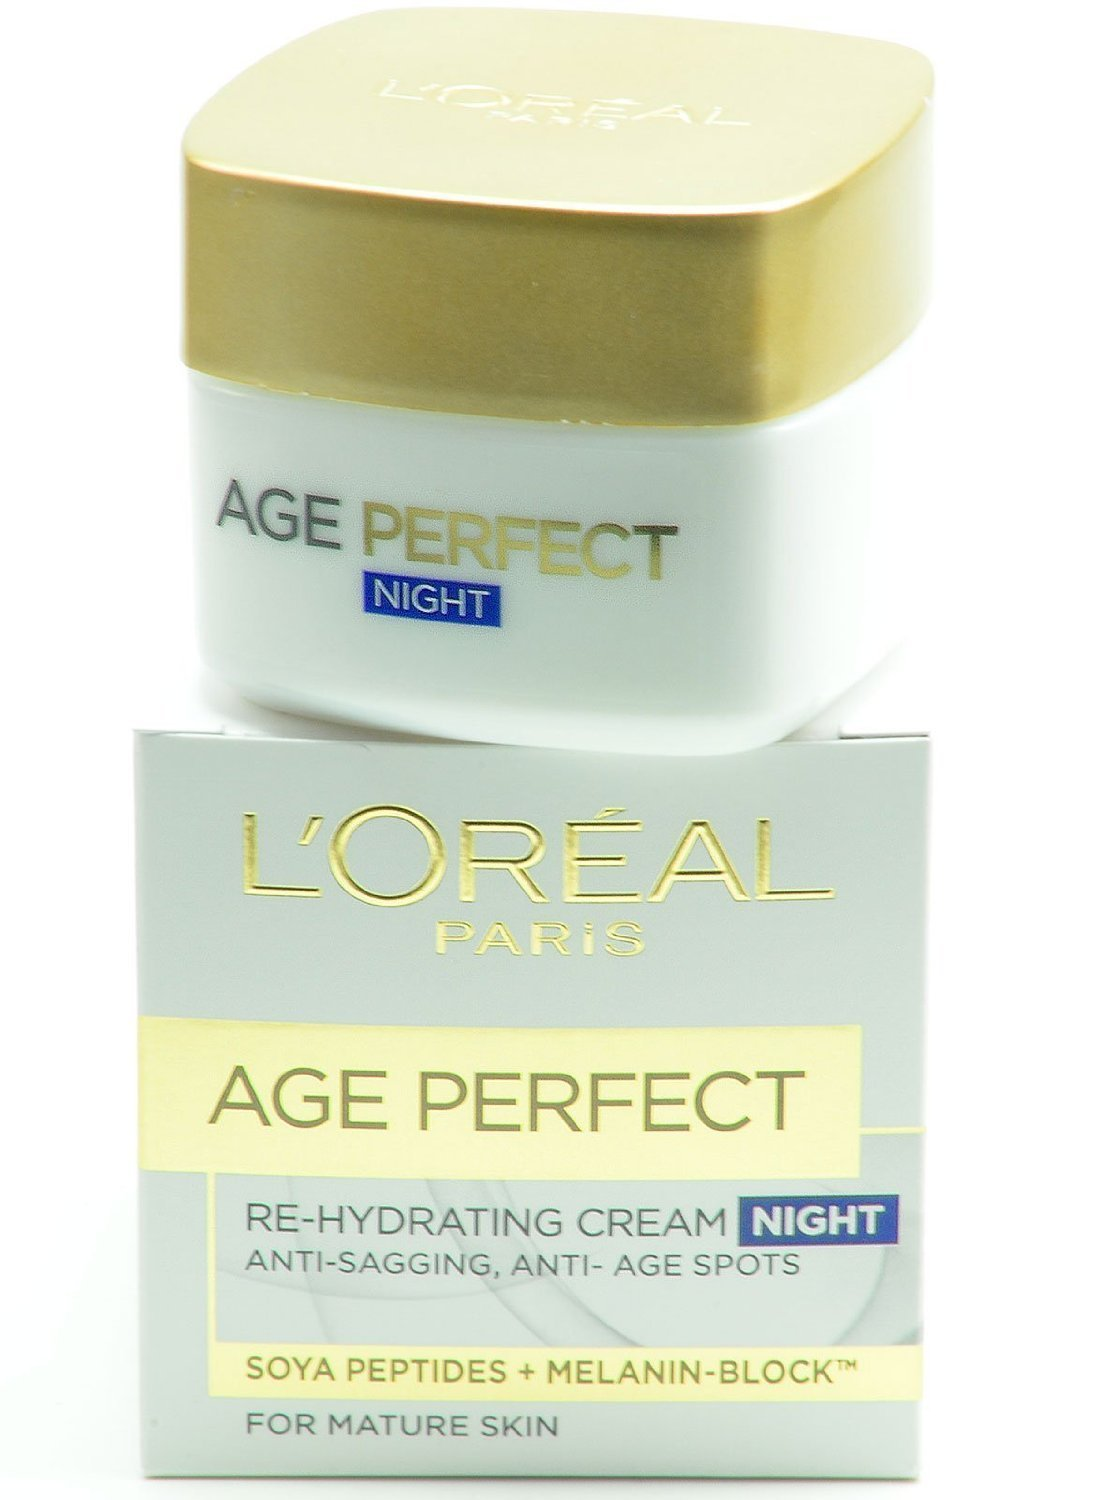 Loreal Age Perfect Re-Hydrating Night Cream for Mature Skin 50 mL